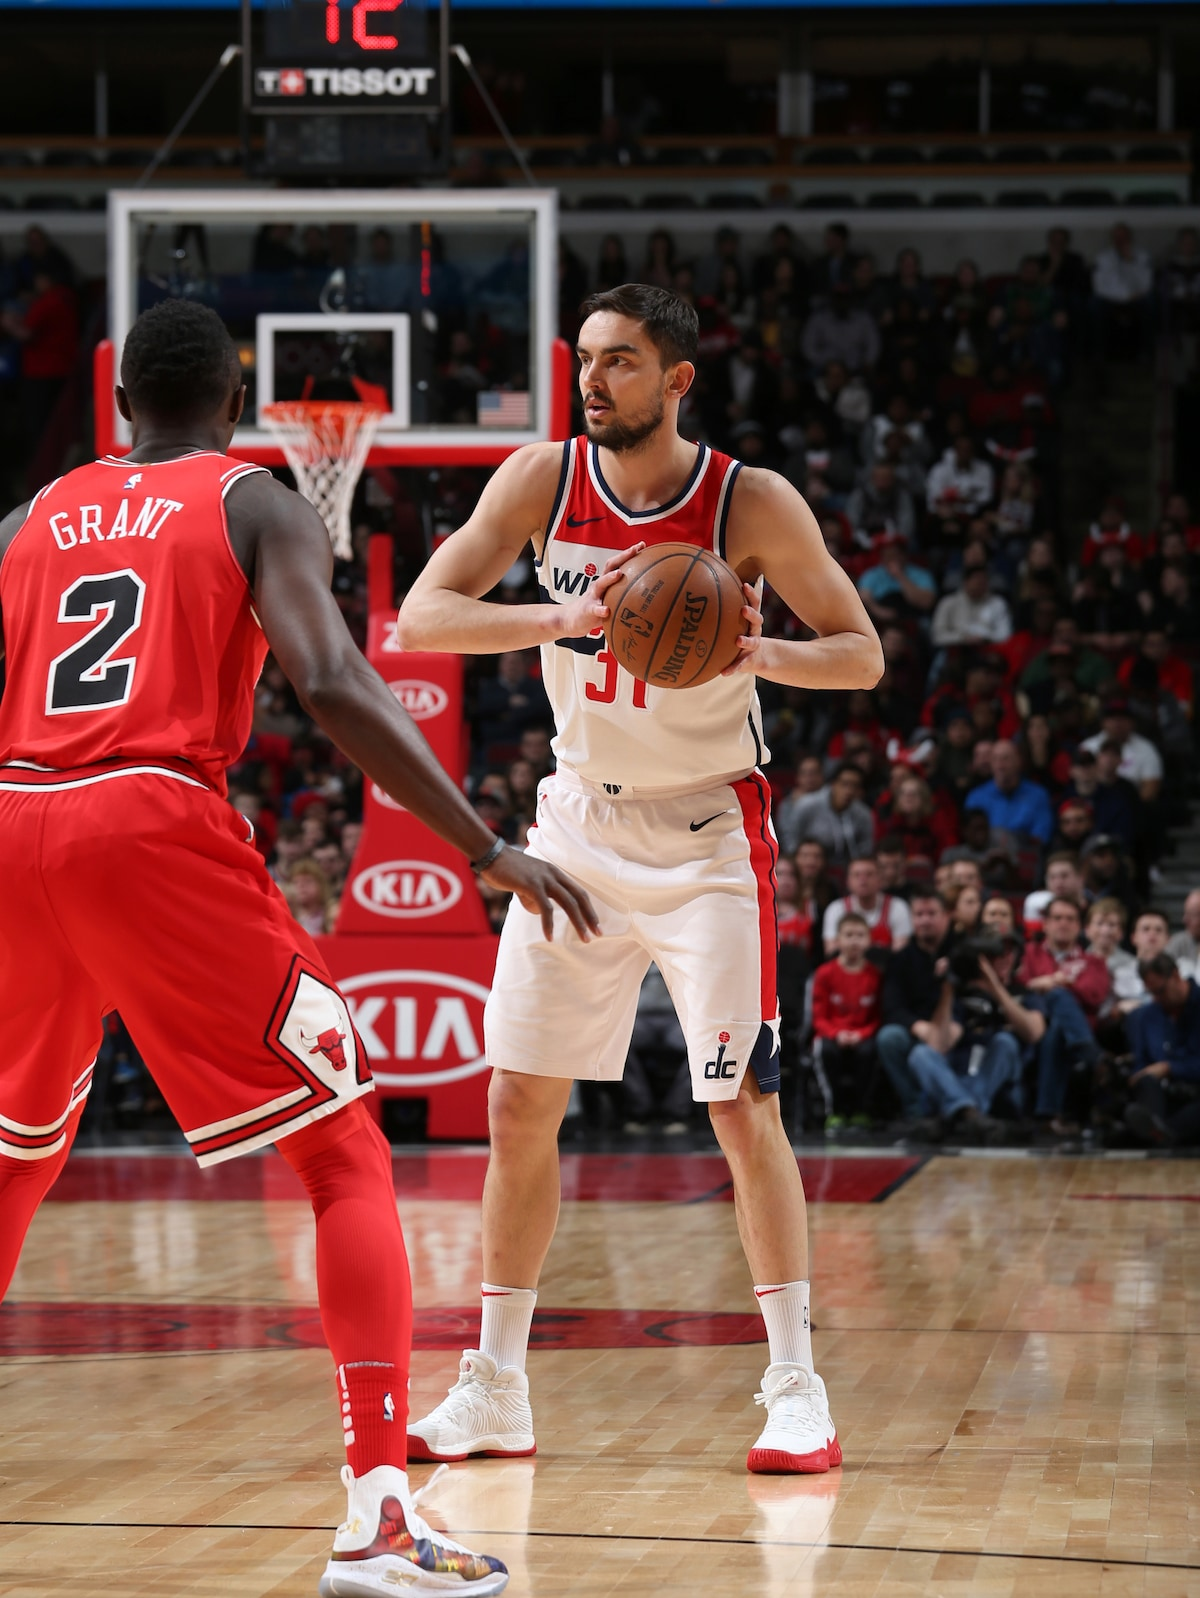 Satoransky of the Washington Wizards holds the ball as Jerian Grant of the Chicago Bulls is on defense.